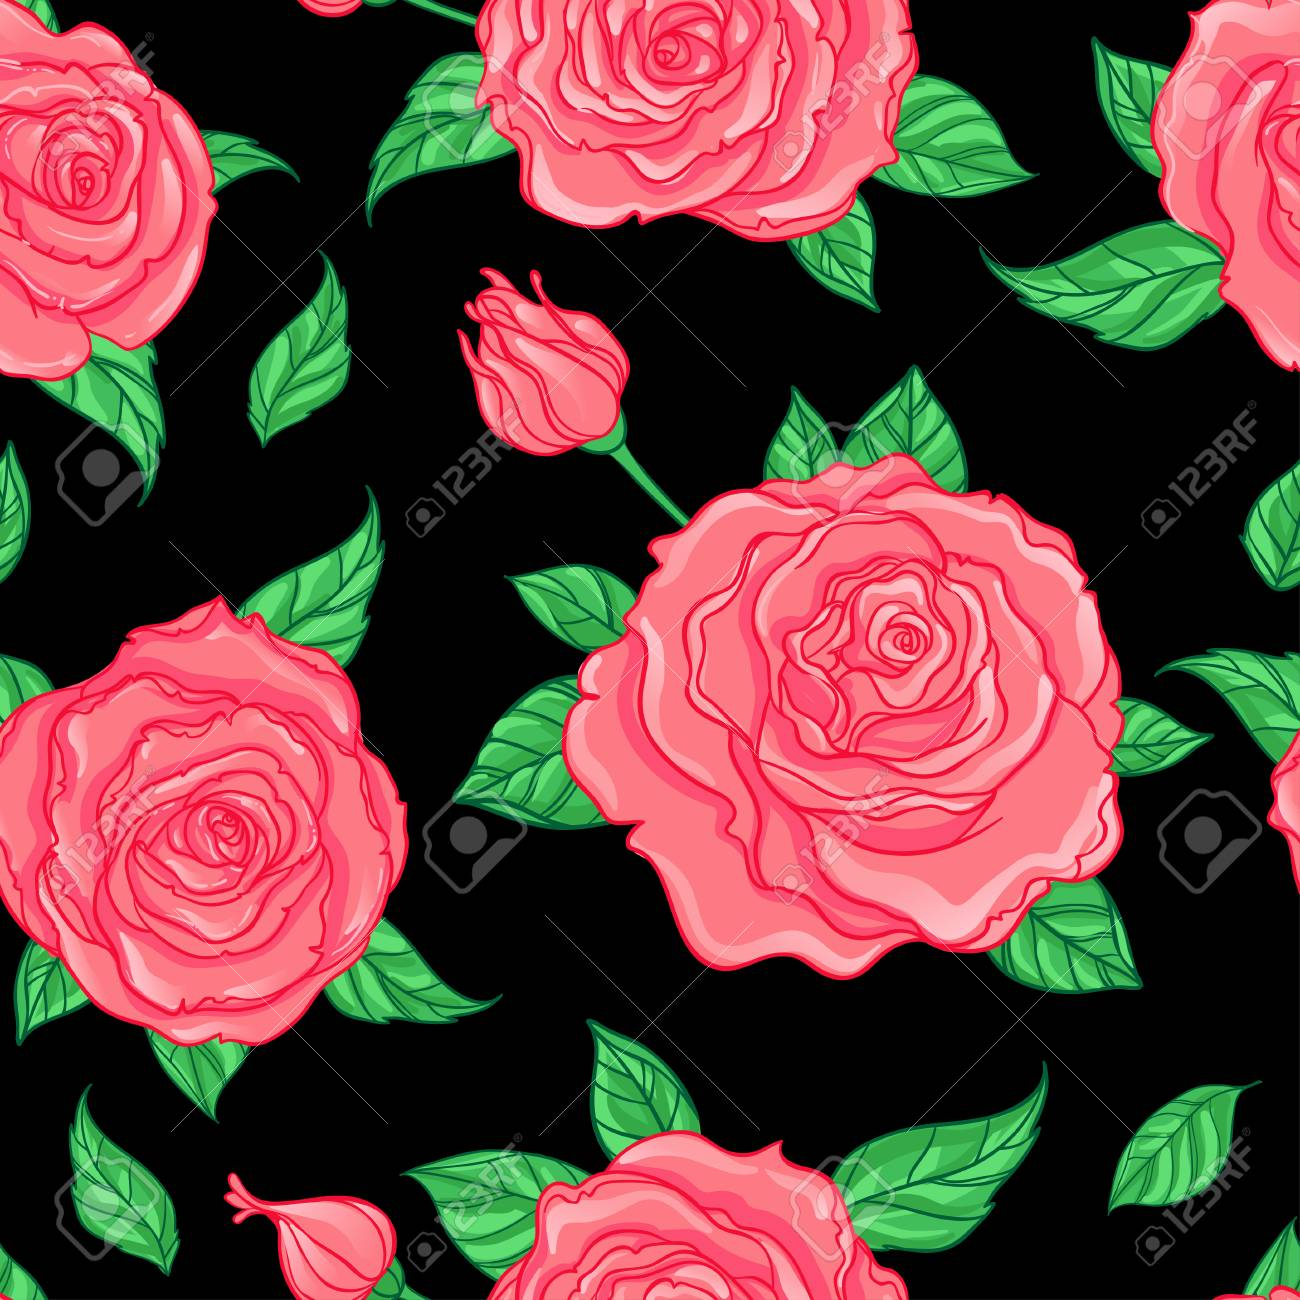 Red Roses Over White Background Seamless Elegant Vintage Floral Pattern Design For Fabric